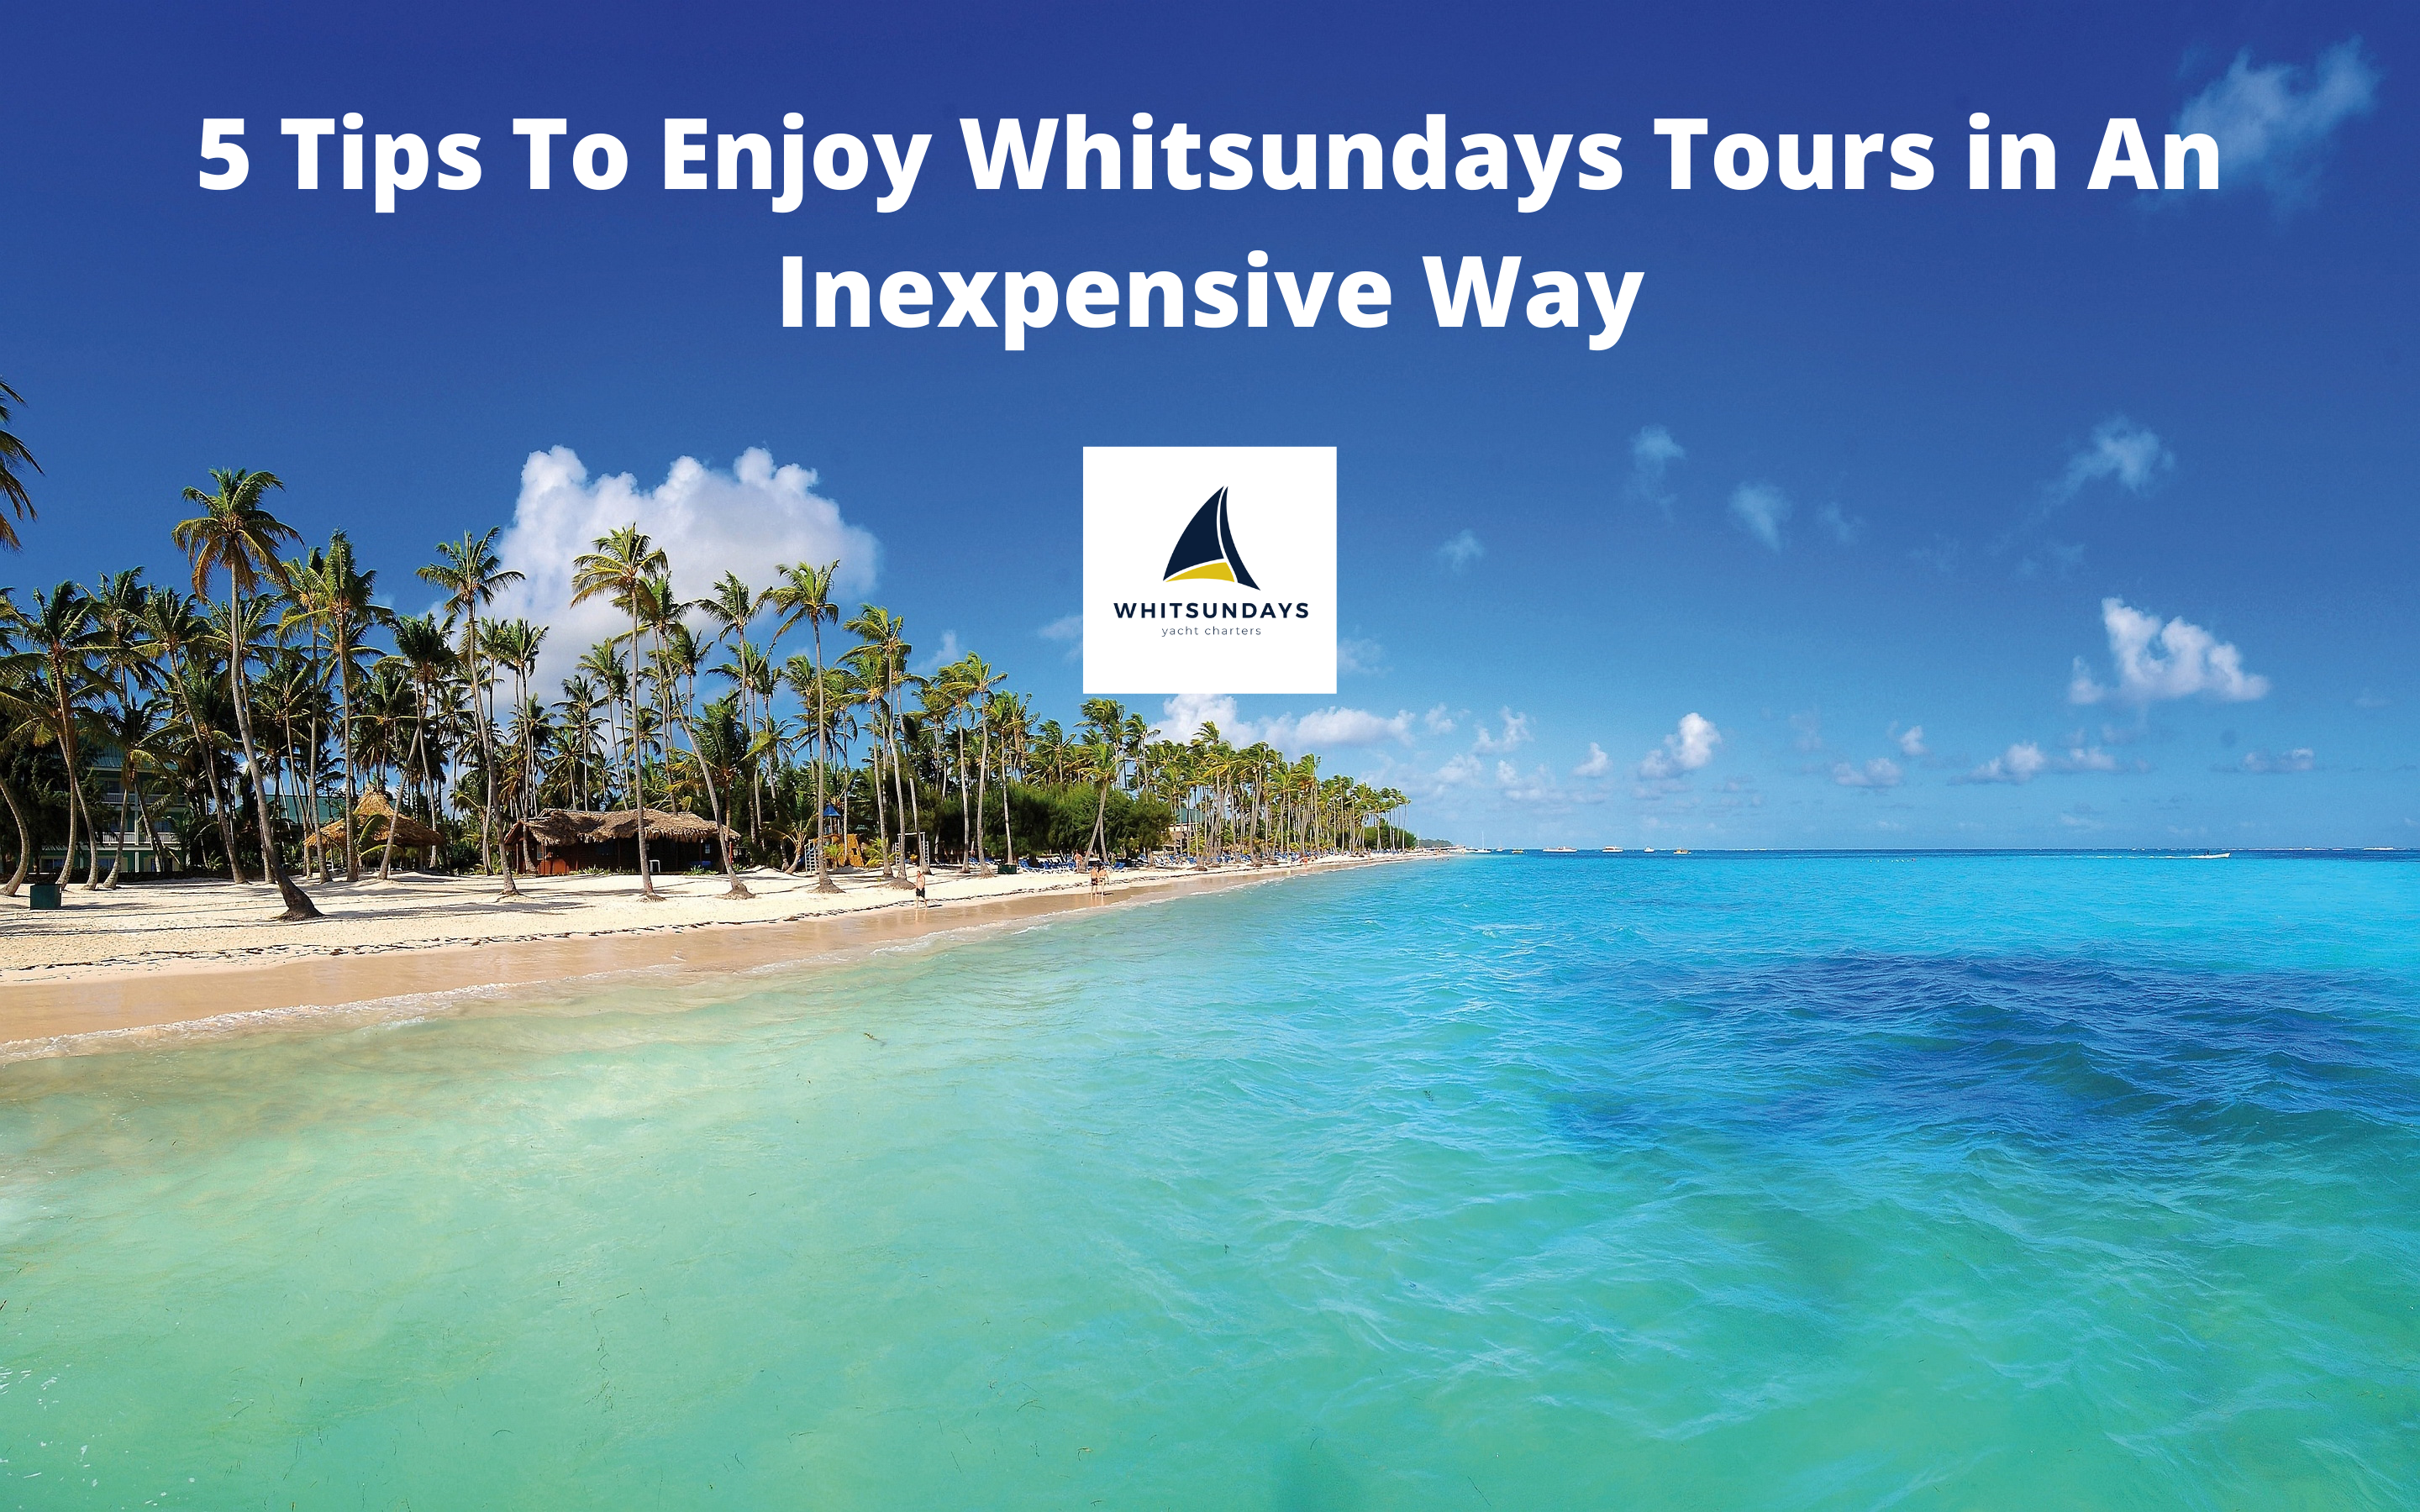 How To Explore Whitsundays in An Inexpensive Way?